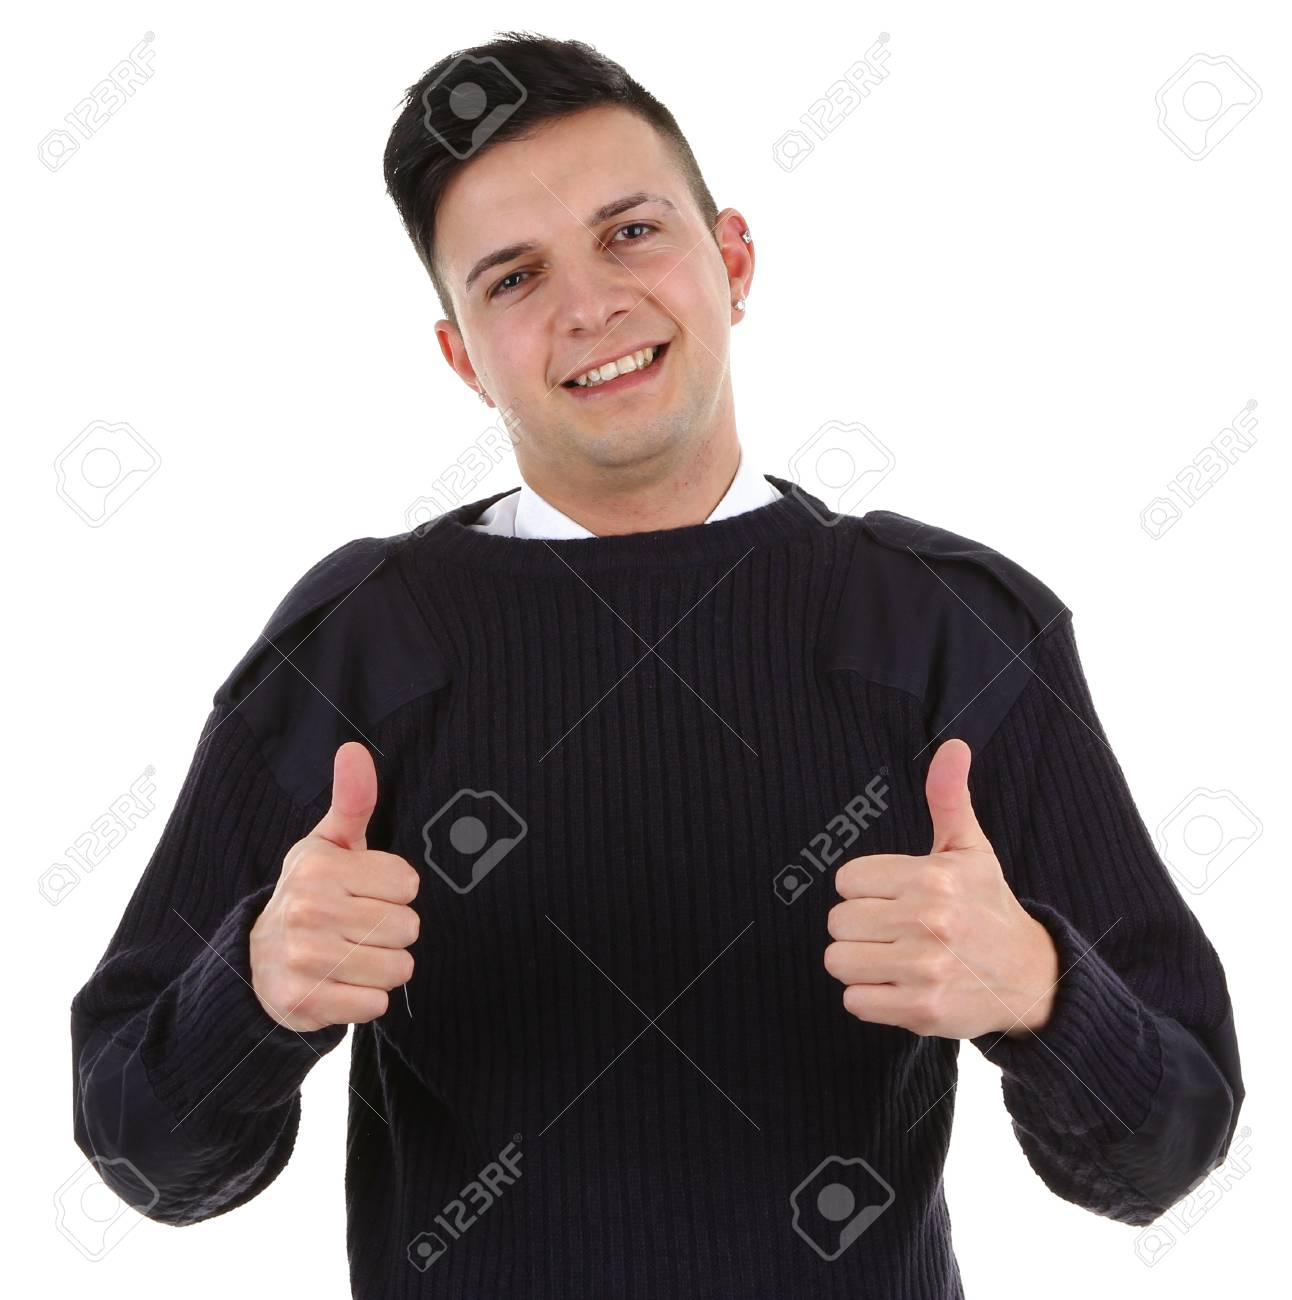 A security guard with a thumbs up sign, isolated on white Stock Photo - 12504333